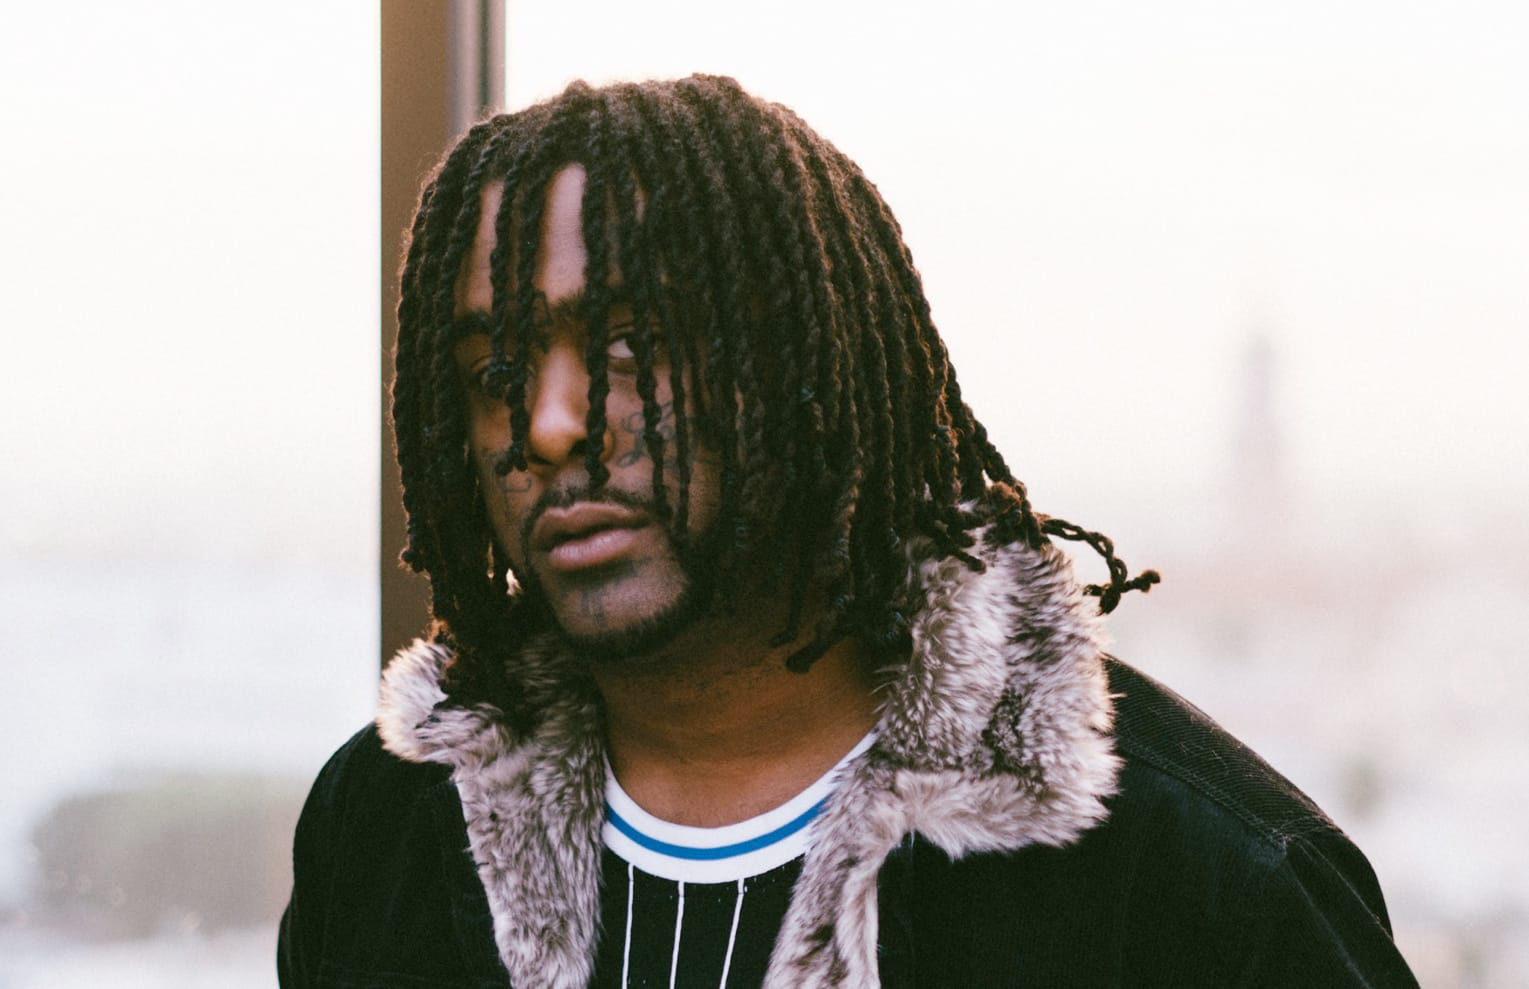 03 Greedo press photo by Dewanne Buckmire